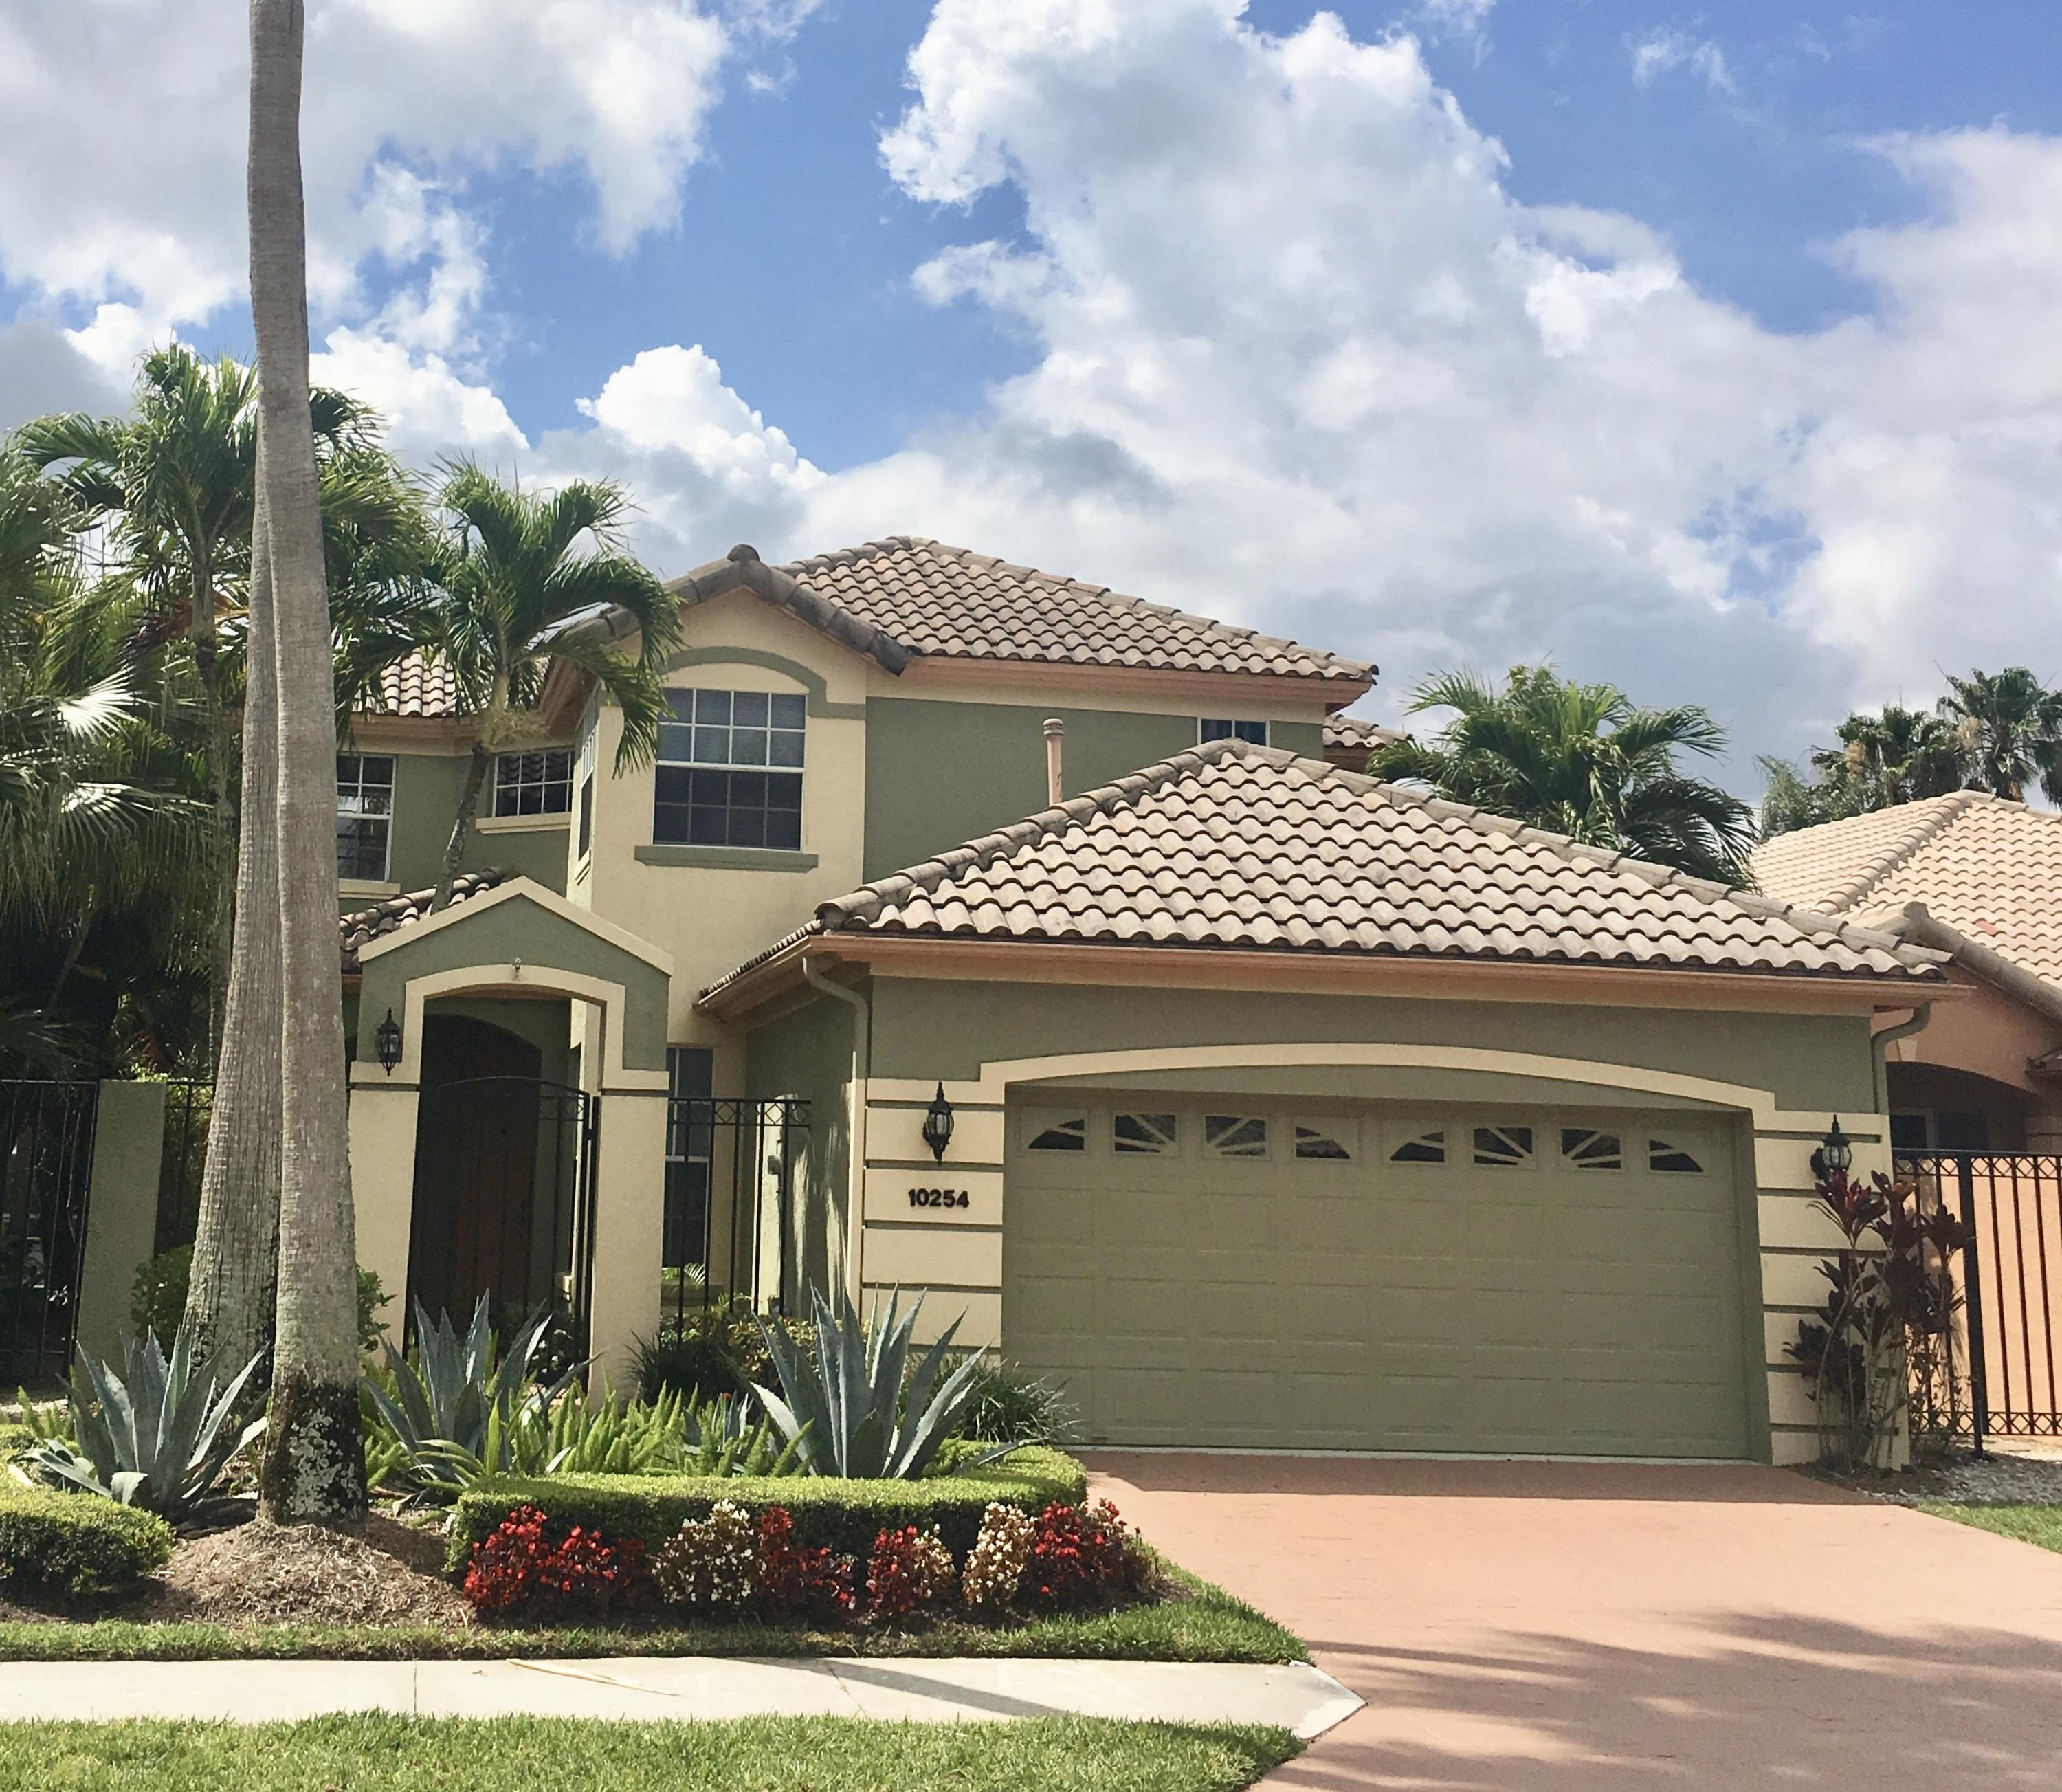 New Home for sale at 10254 Osprey Trace in West Palm Beach